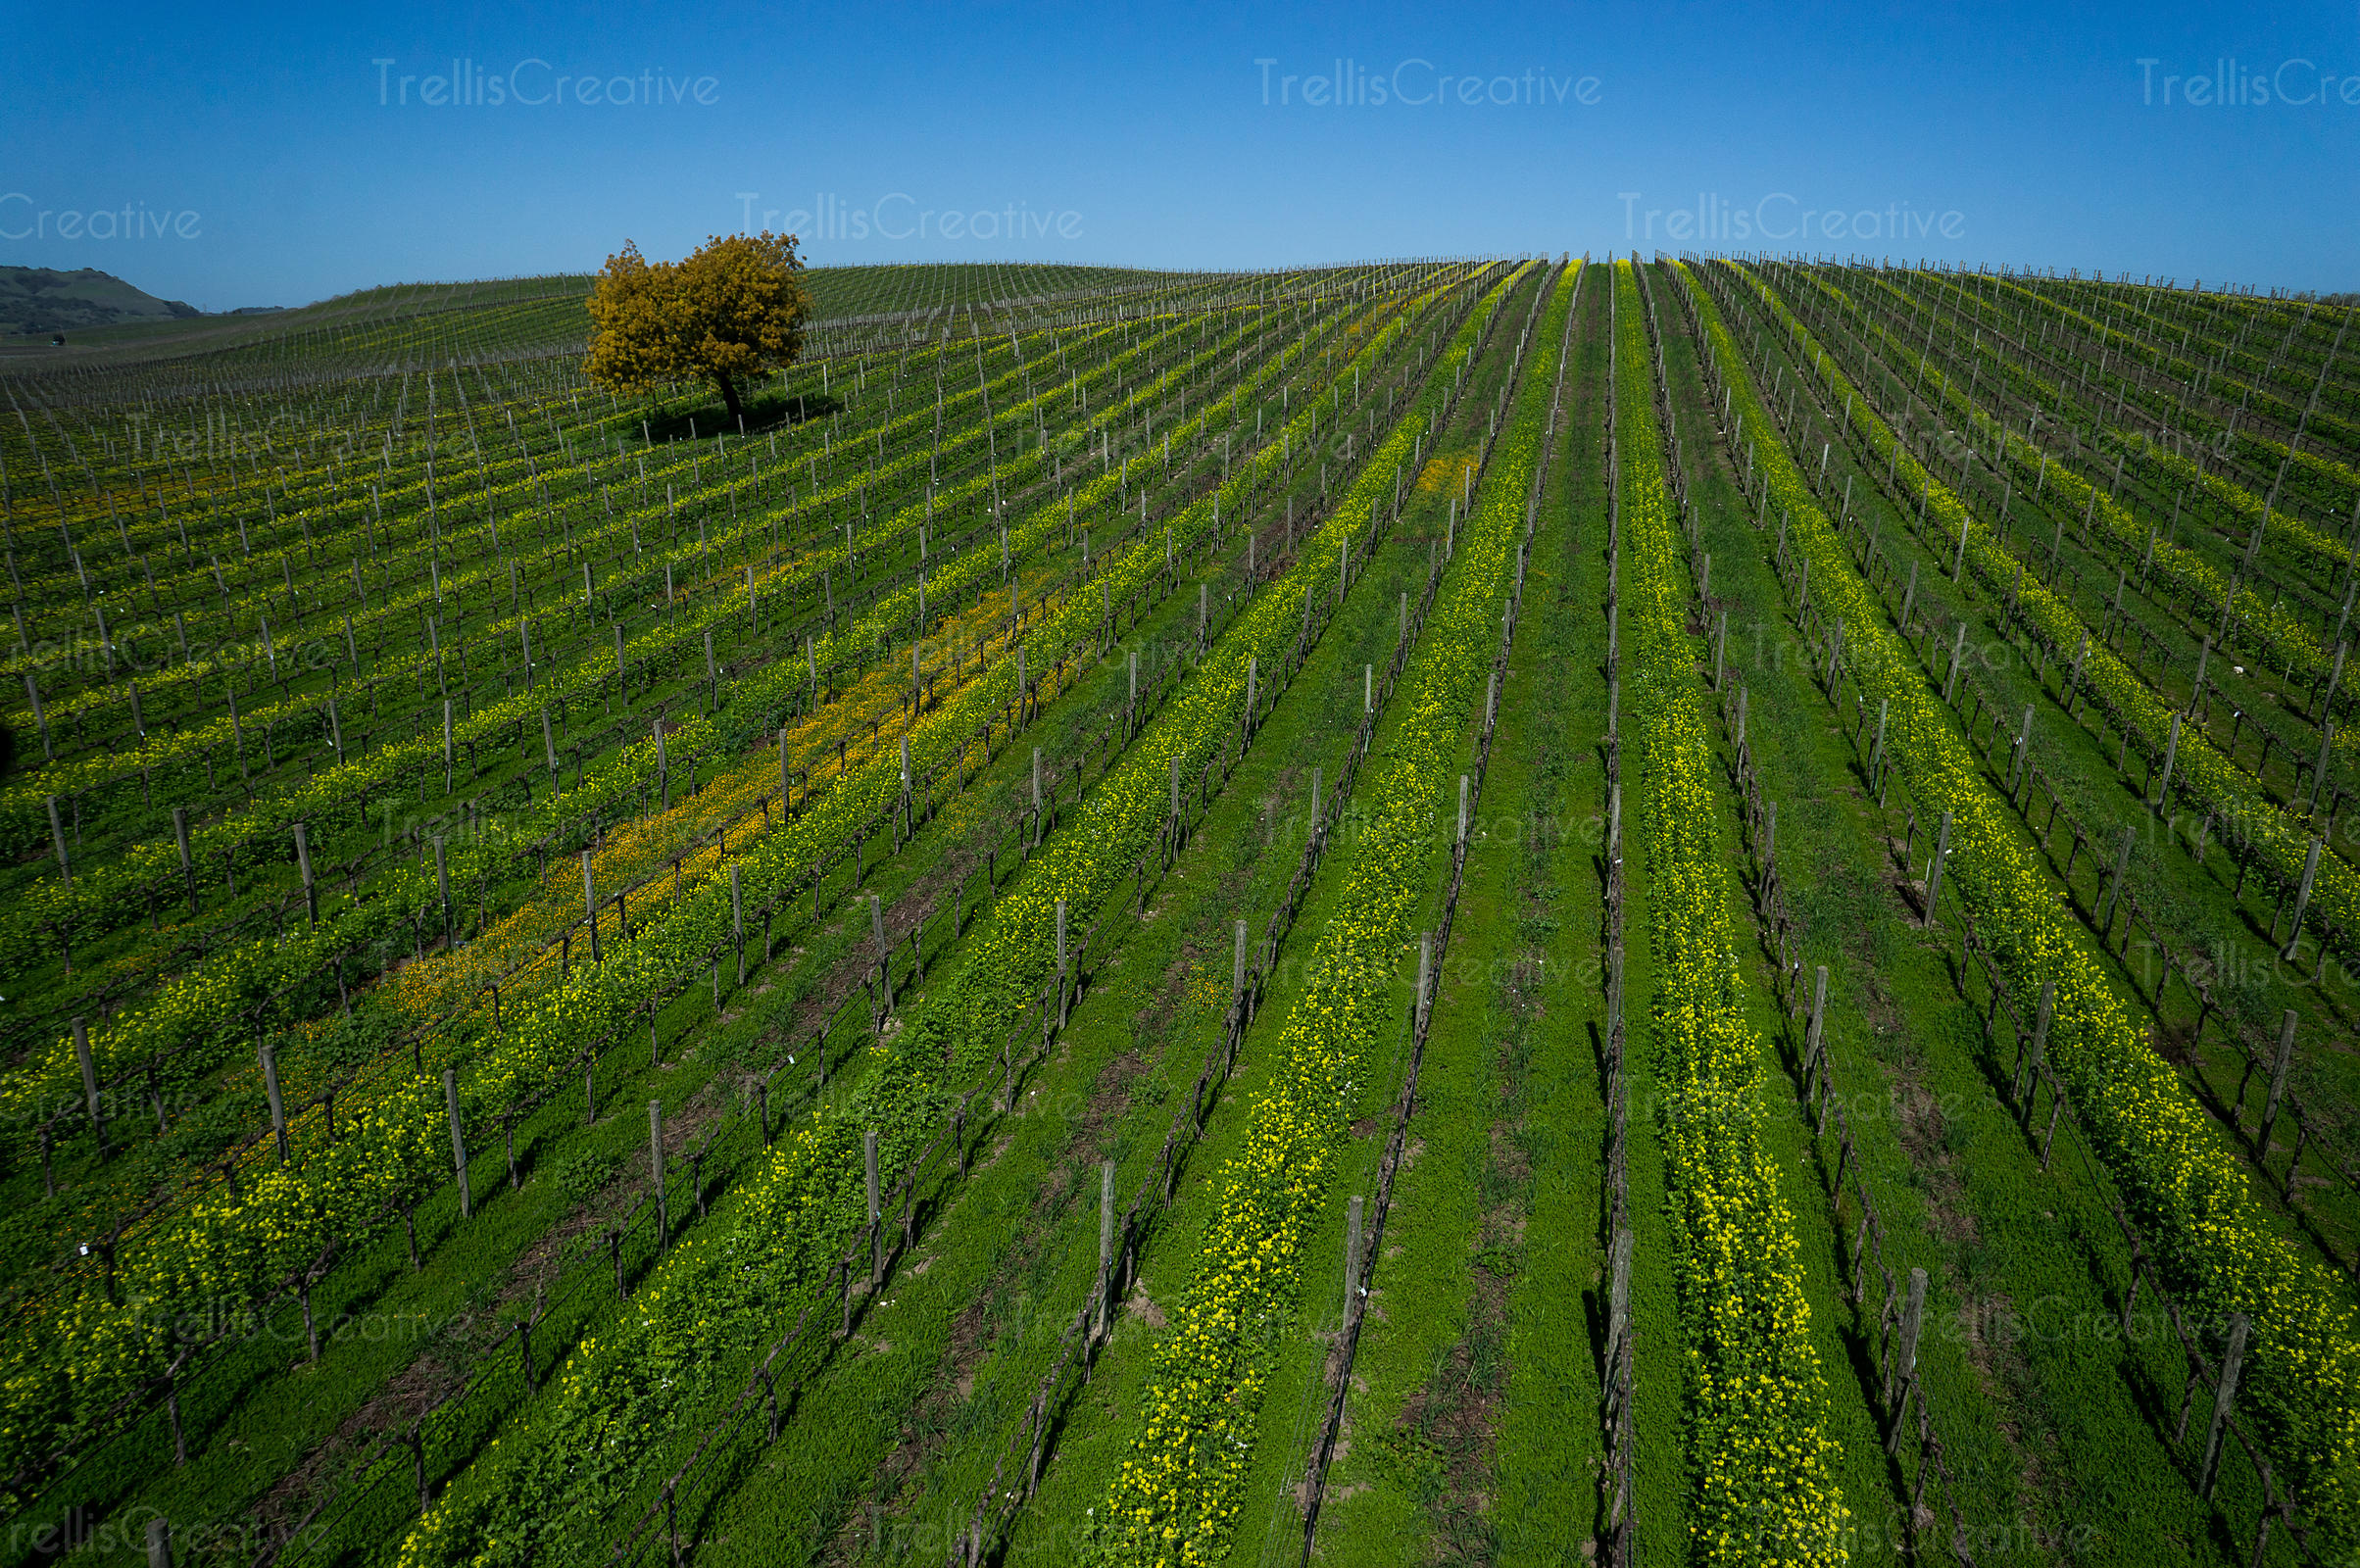 Mustard flowers growing in between the tresllised vines, aerial view